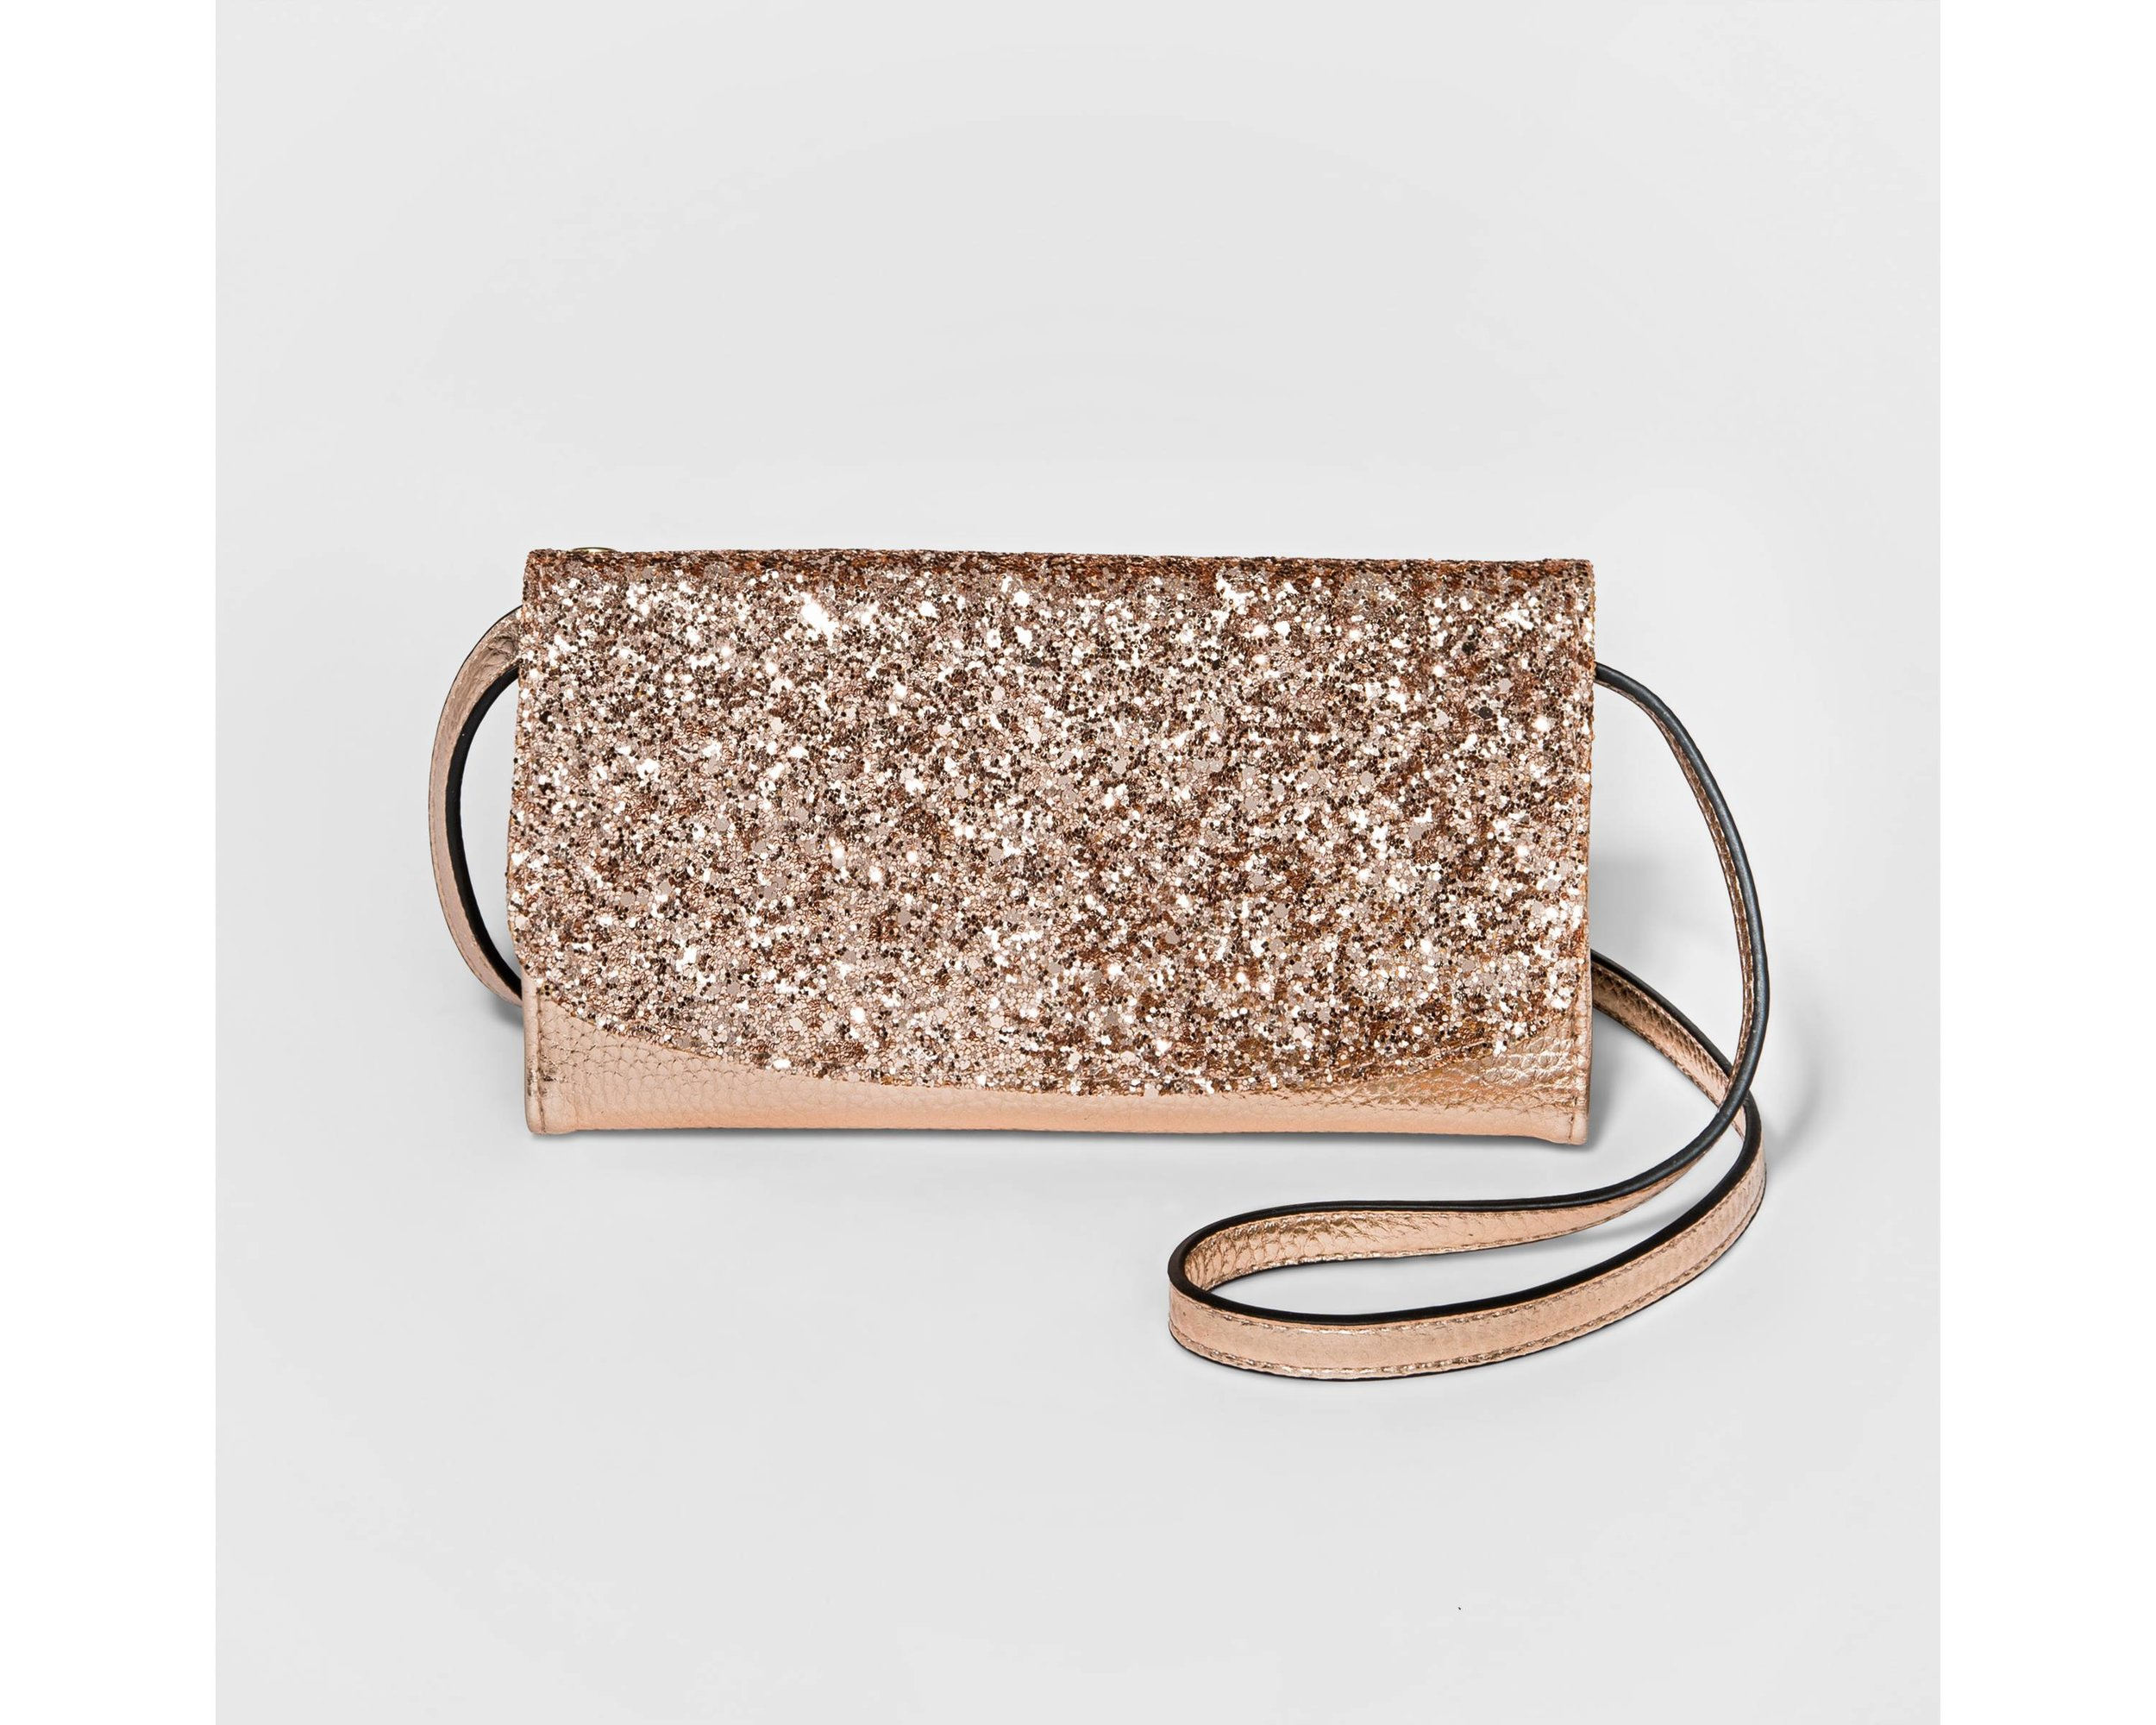 SMALL PURSE... - because it's cute, stylish, and practical